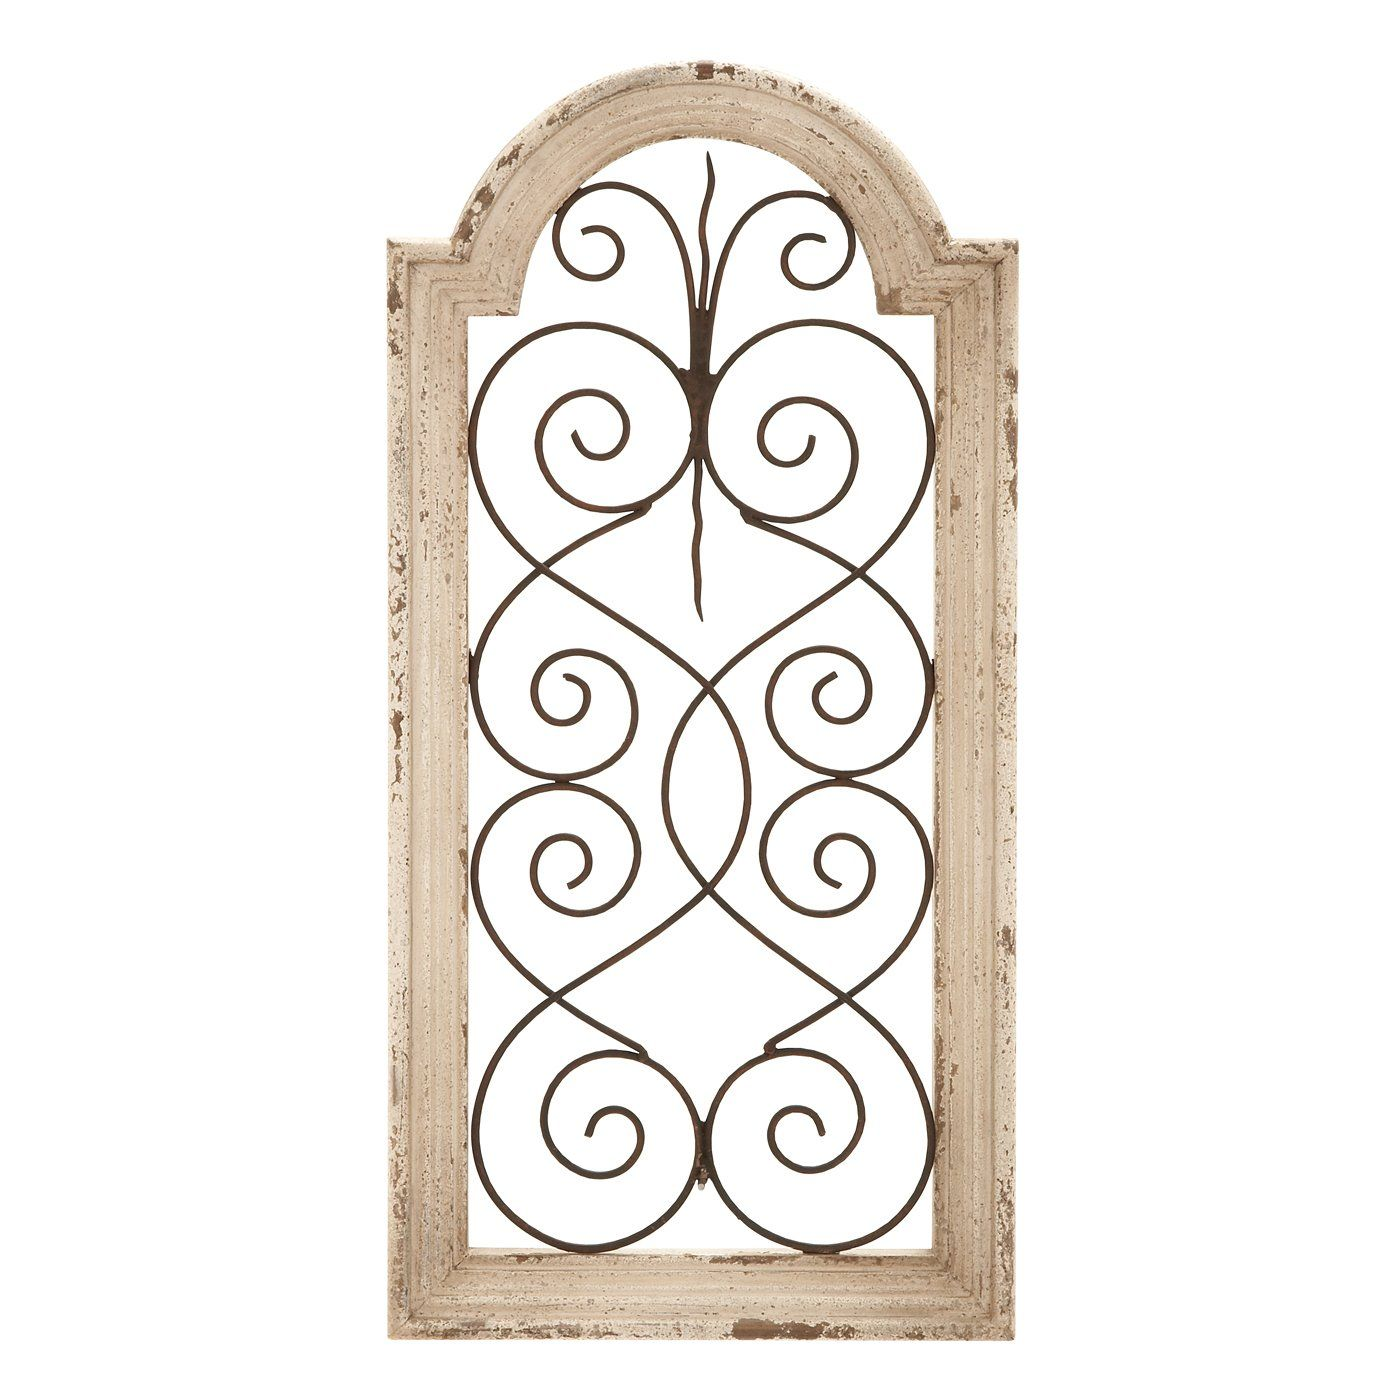 Woodland Imports Attractive Wood Panel Wall D�cor: Shop Woodland Imports 52790 Simple Metal And Wood